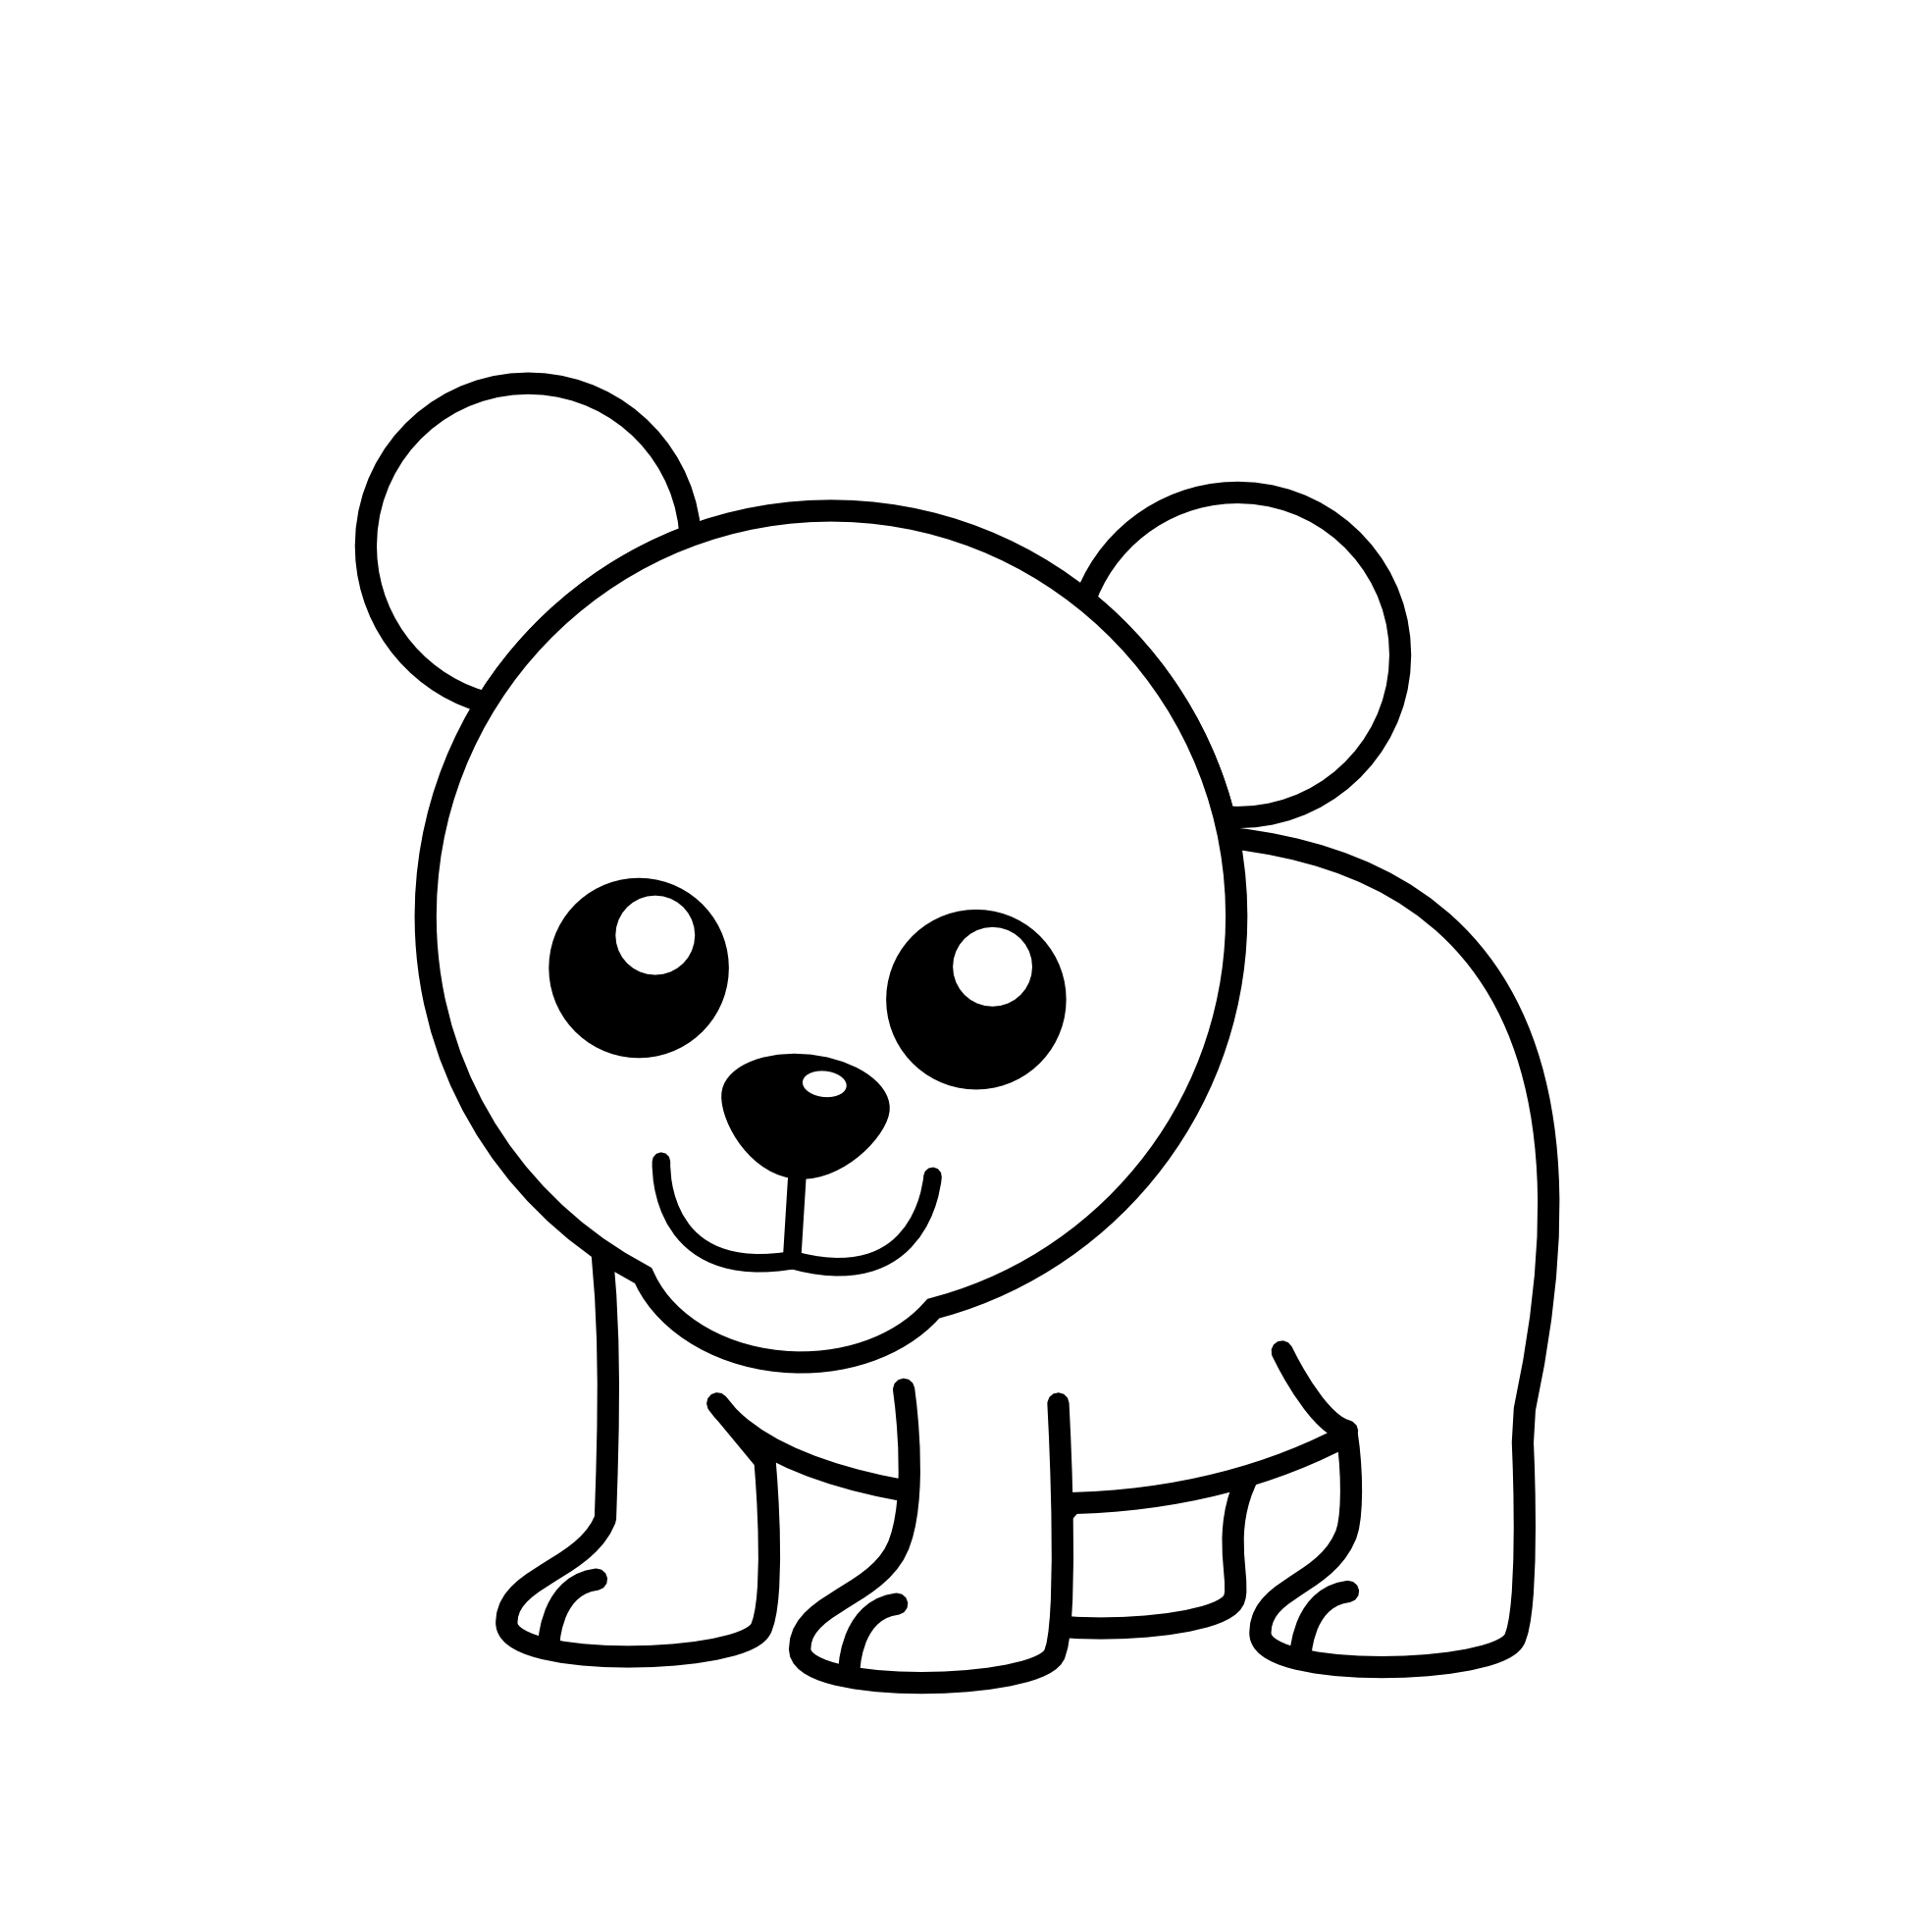 Bear clipart google coloring page clip royalty free library Image of Bear Cub Clipart Polar Bear Coloring Page Clipart - Clip ... clip royalty free library